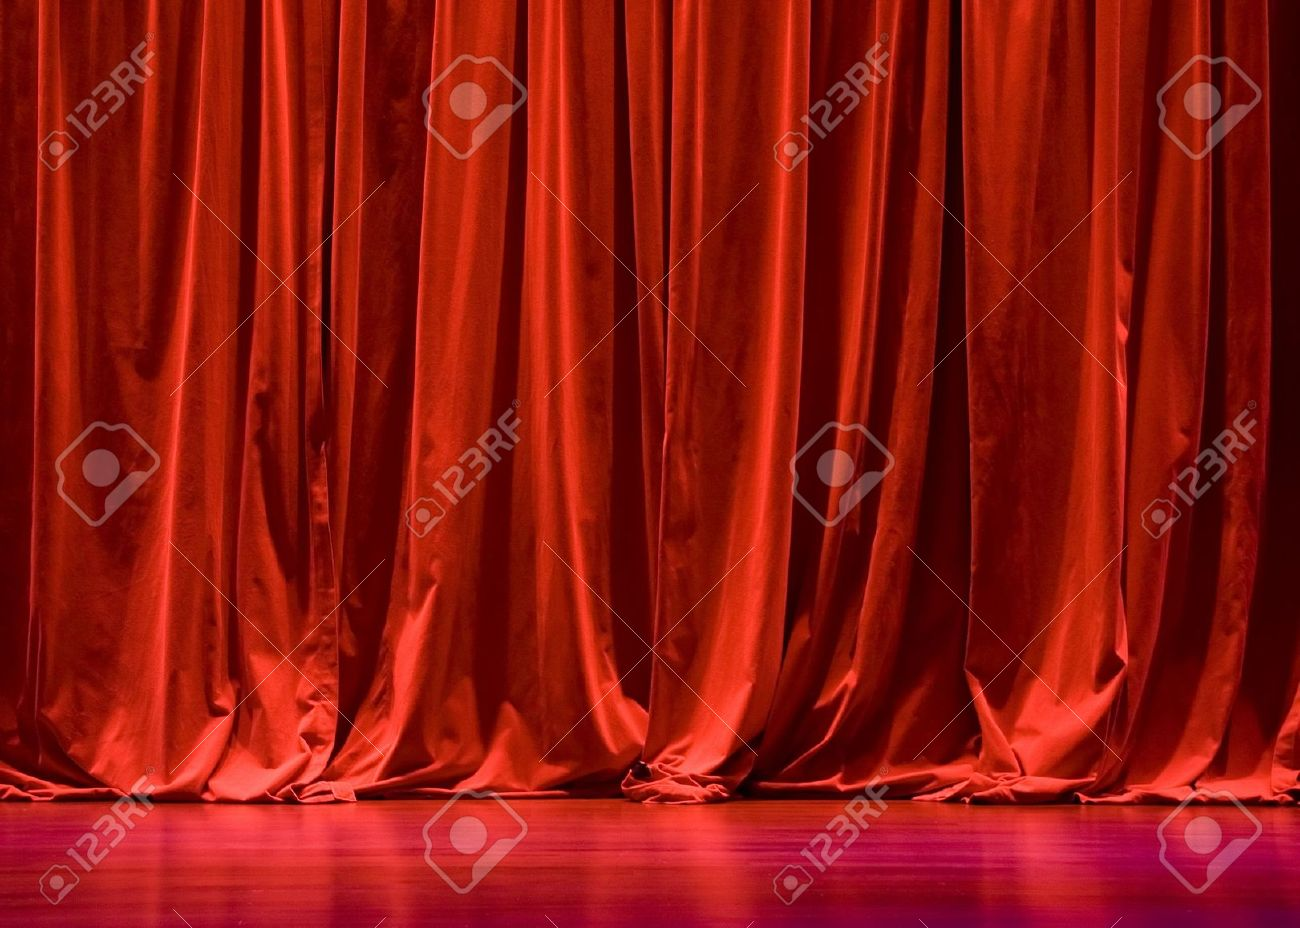 Red velvet curtains stage - Red Velvet Stage Curtains With Stage Floor Stock Photo 861640